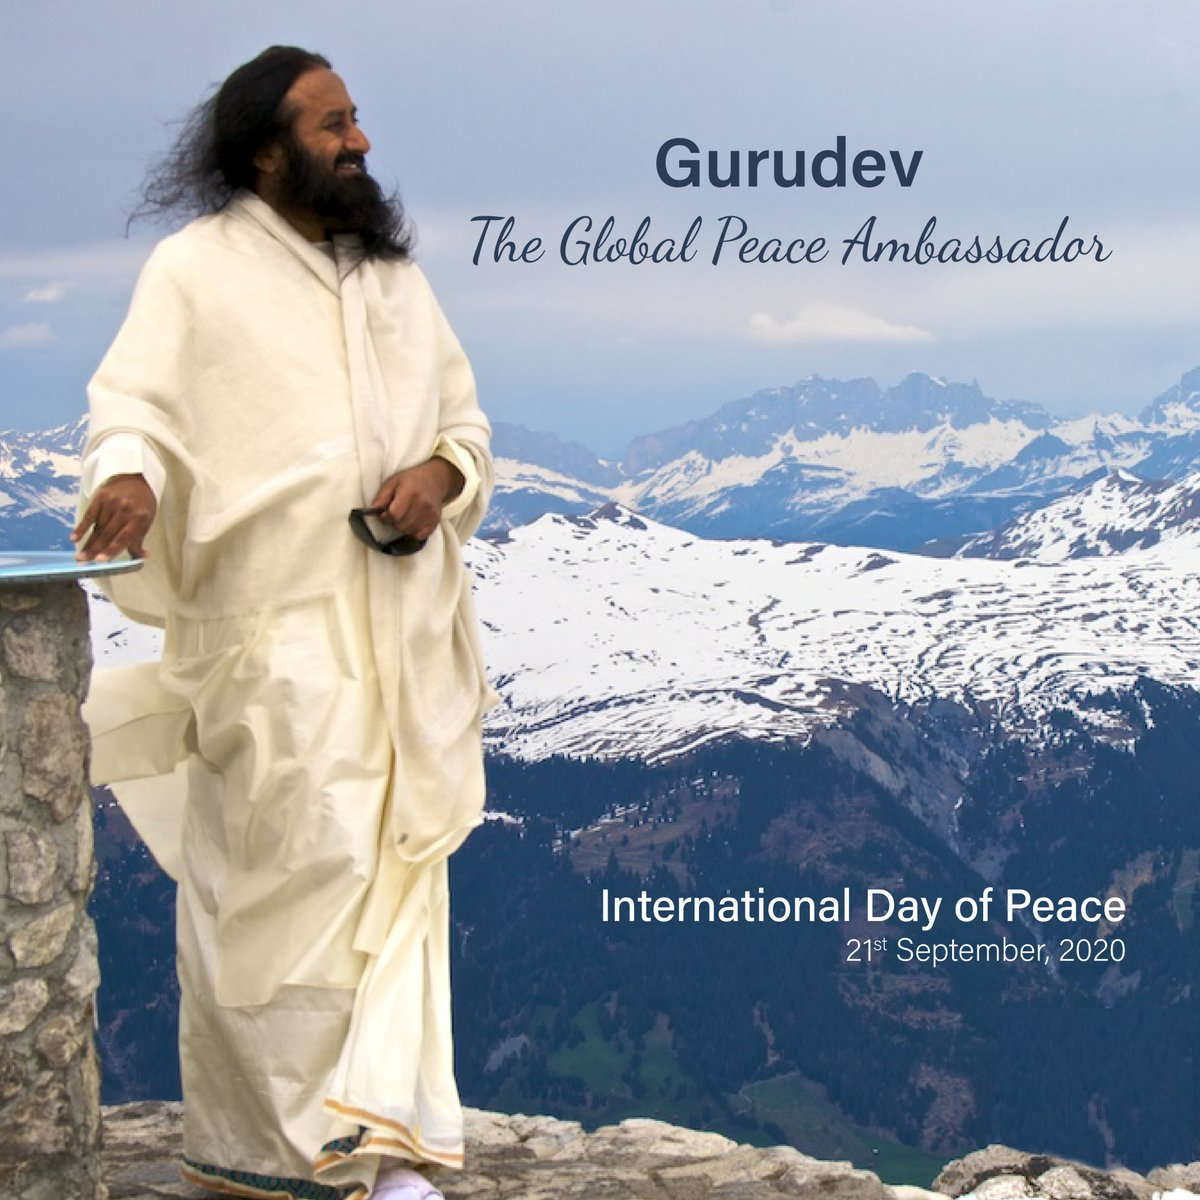 Gurudev @SriSri Ravi Shankar continues His relentless efforts as a Global Peace Ambassador. From Iraq to Ivory Coast and Kashmir to Colombia, He continues to inspire, bridge boundaries and bring peace.  #InternationalPeaceDay #PeaceDay2020 #InternationalDayofPeace2020  (1/2) https://t.co/ND8r2cuhxM